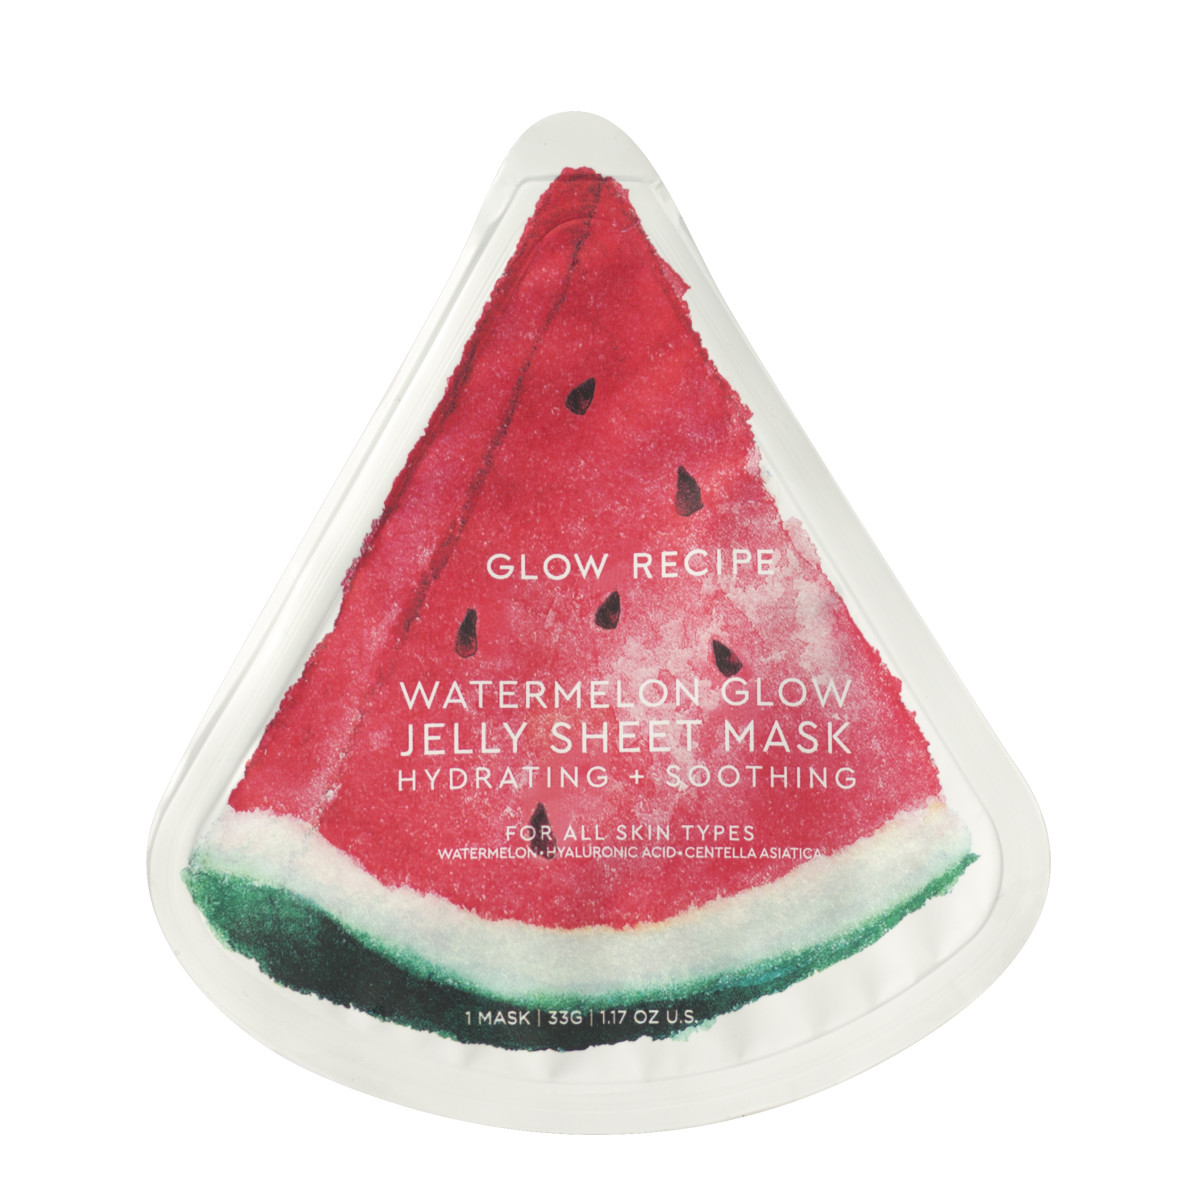 The Glow Recipe Watermelon Jelly Sheet Mask. Photo: Courtesy of Glow Recipe